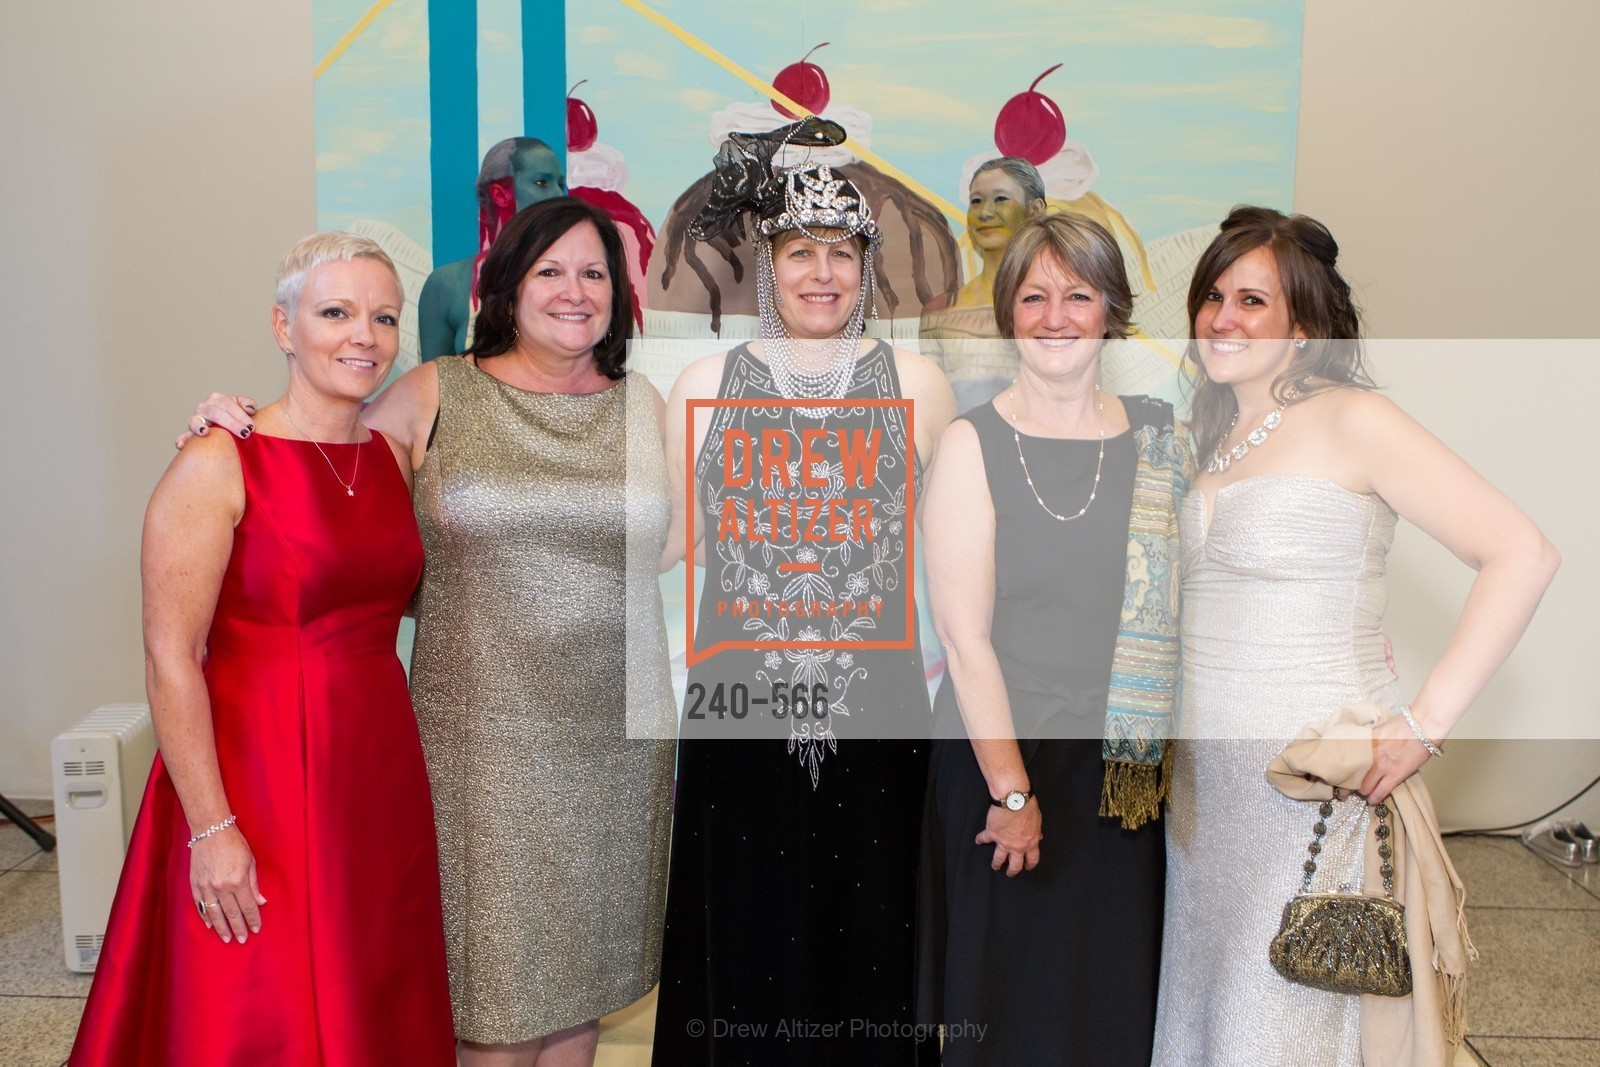 Julie Campbell, Eileen Fernandes, Cathy Woods, Amy Vaughan, SAN JOSE MUSEUM OF ART'S Spectrum Gala - 45th Anniversary, US, September 13th, 2014,Drew Altizer, Drew Altizer Photography, full-service agency, private events, San Francisco photographer, photographer california